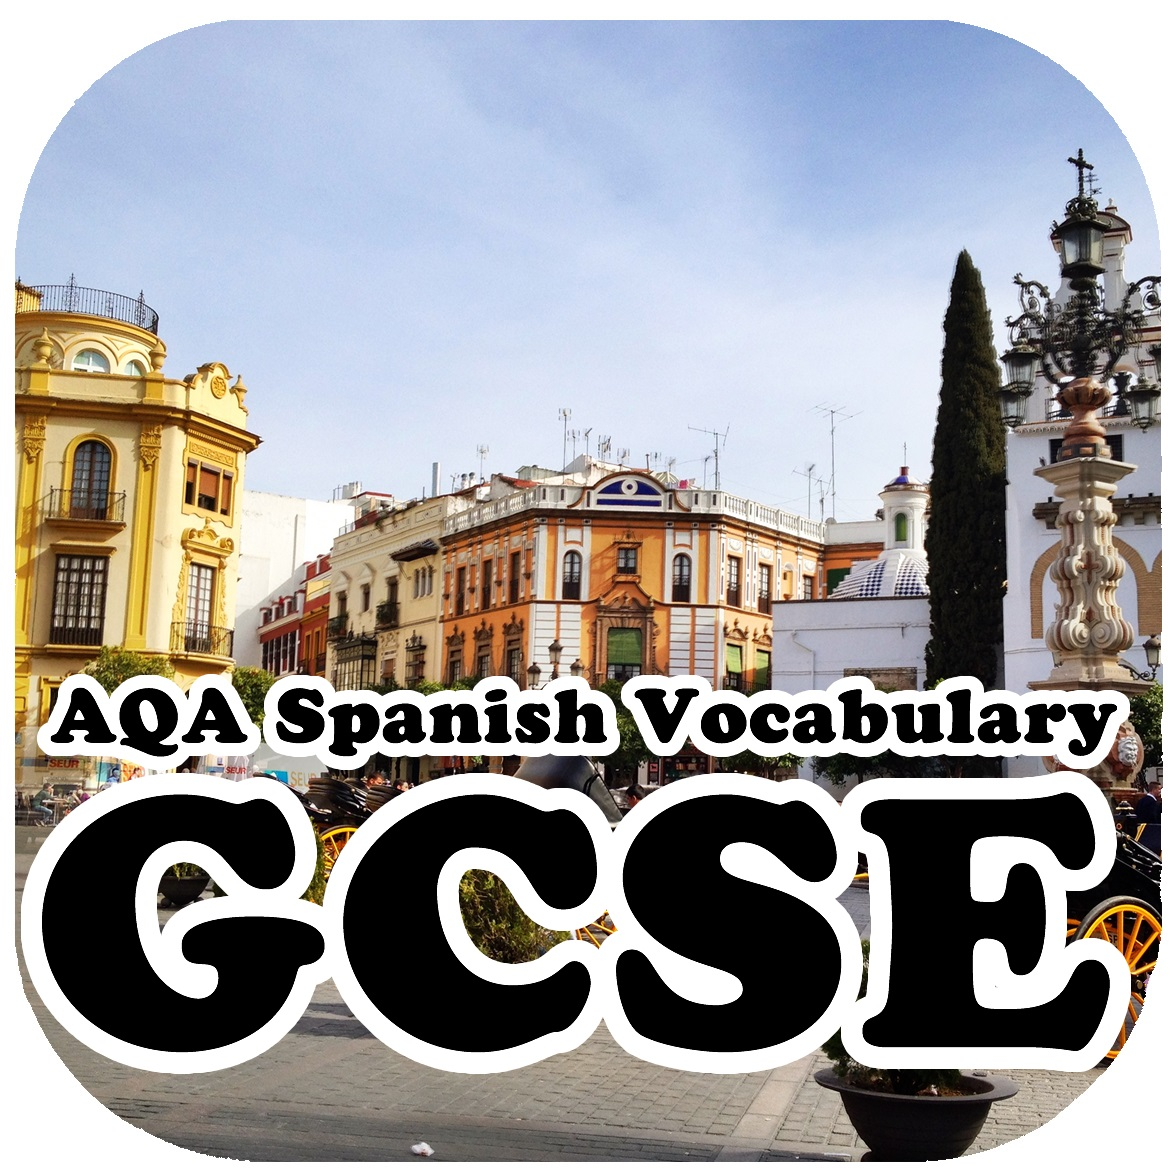 Gcse spanish coursework help